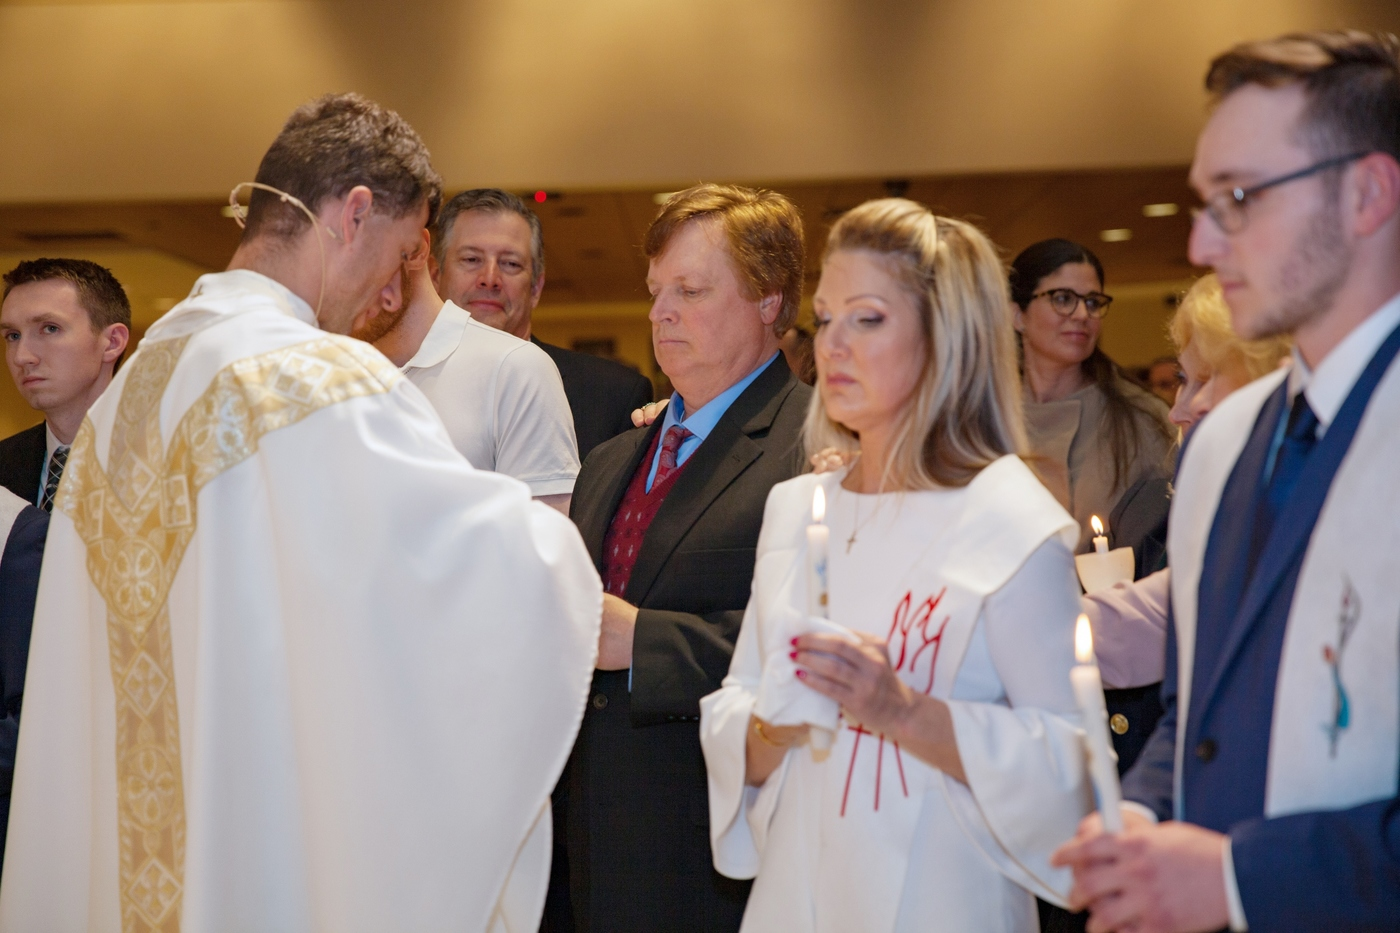 Baptism of the Catechumens and Reception into the Catholic Church